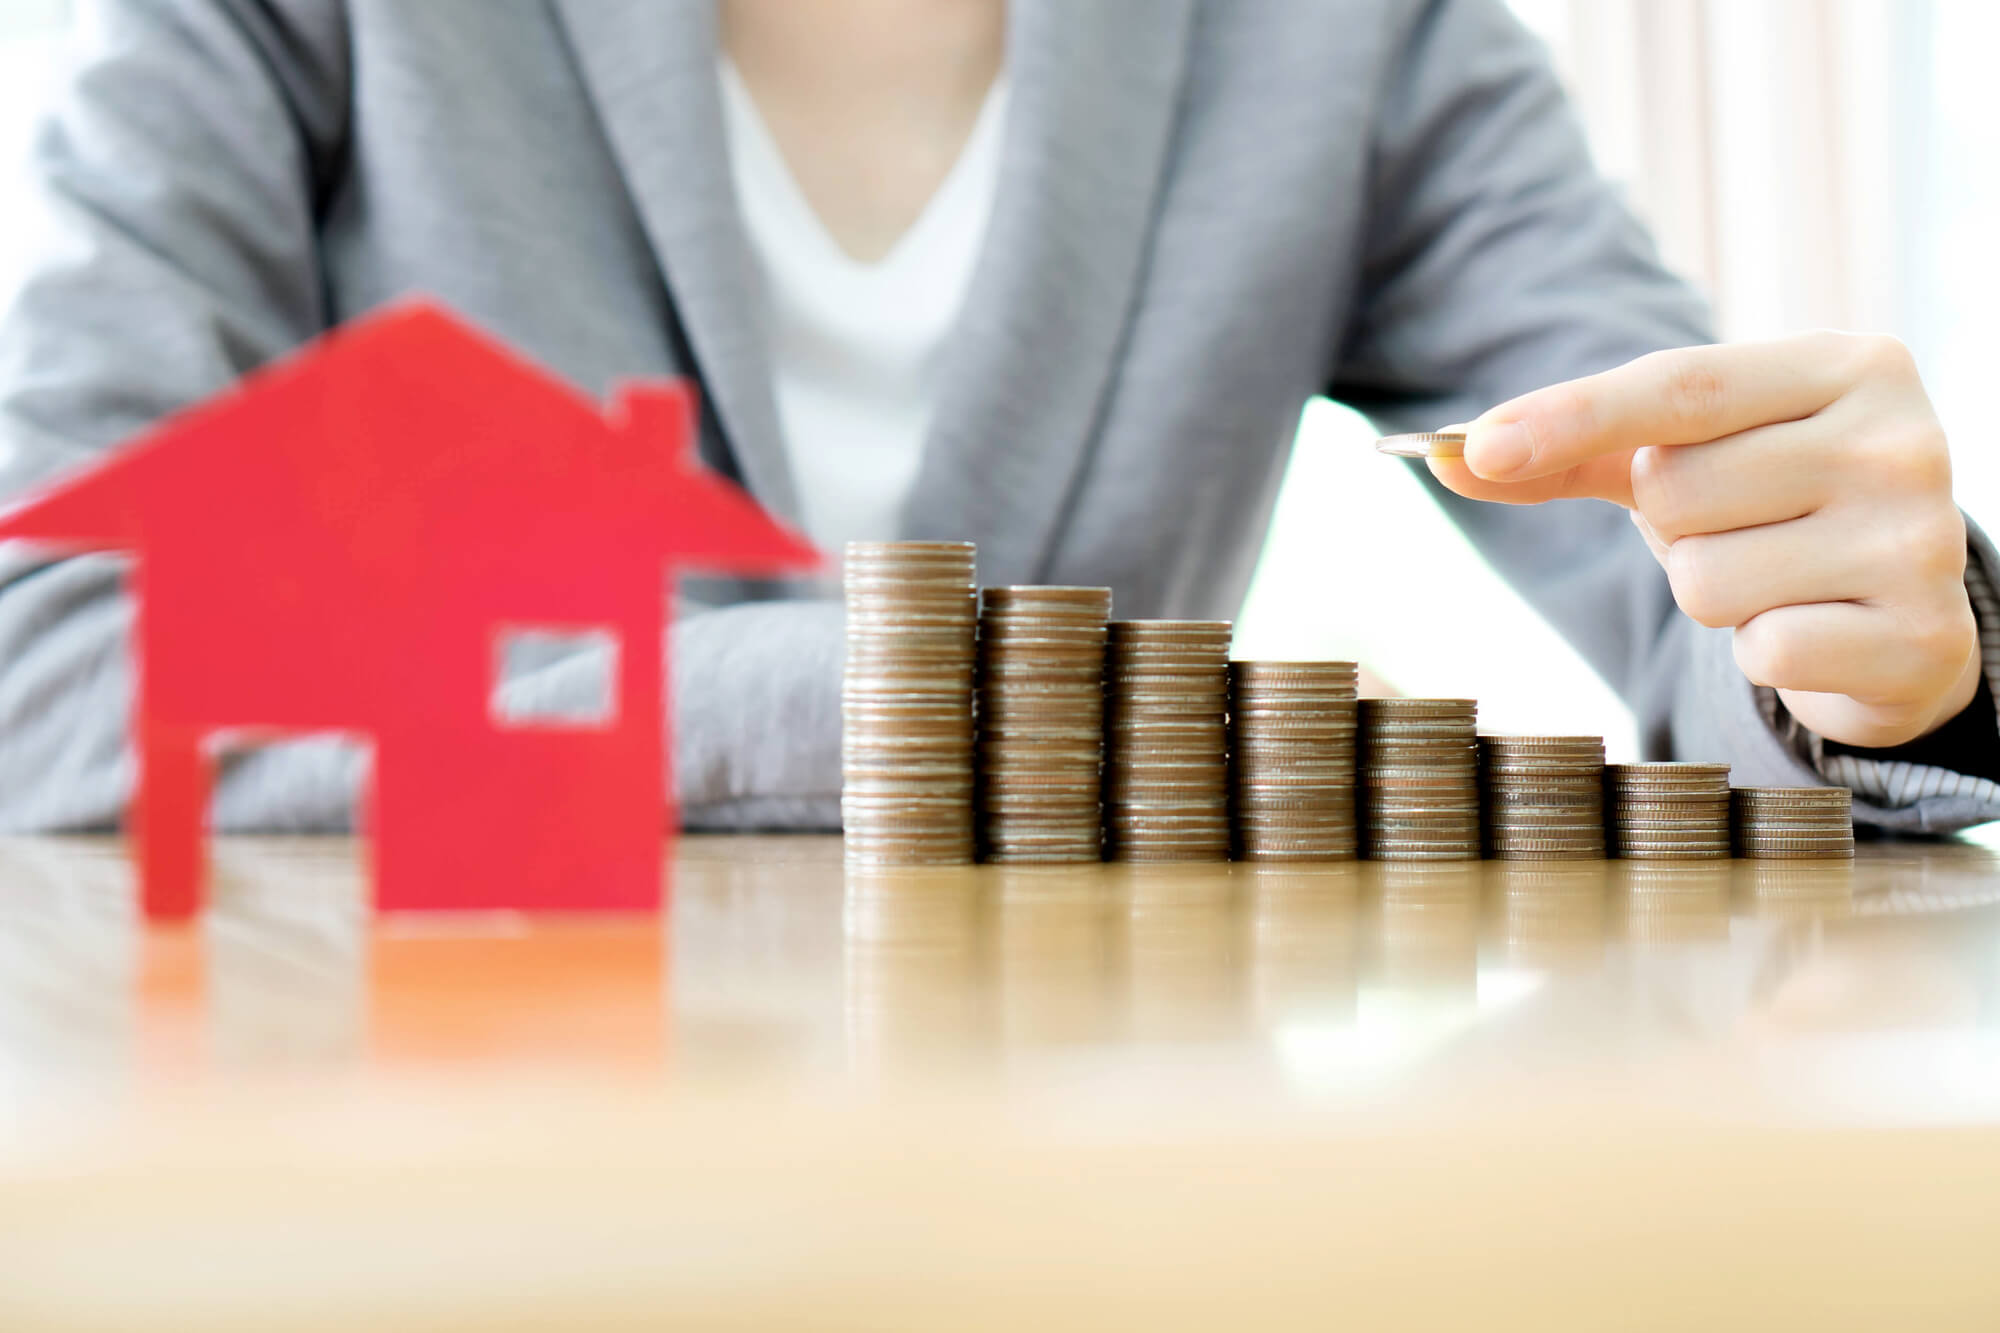 stacking up rental income money and finding out how it is taxed